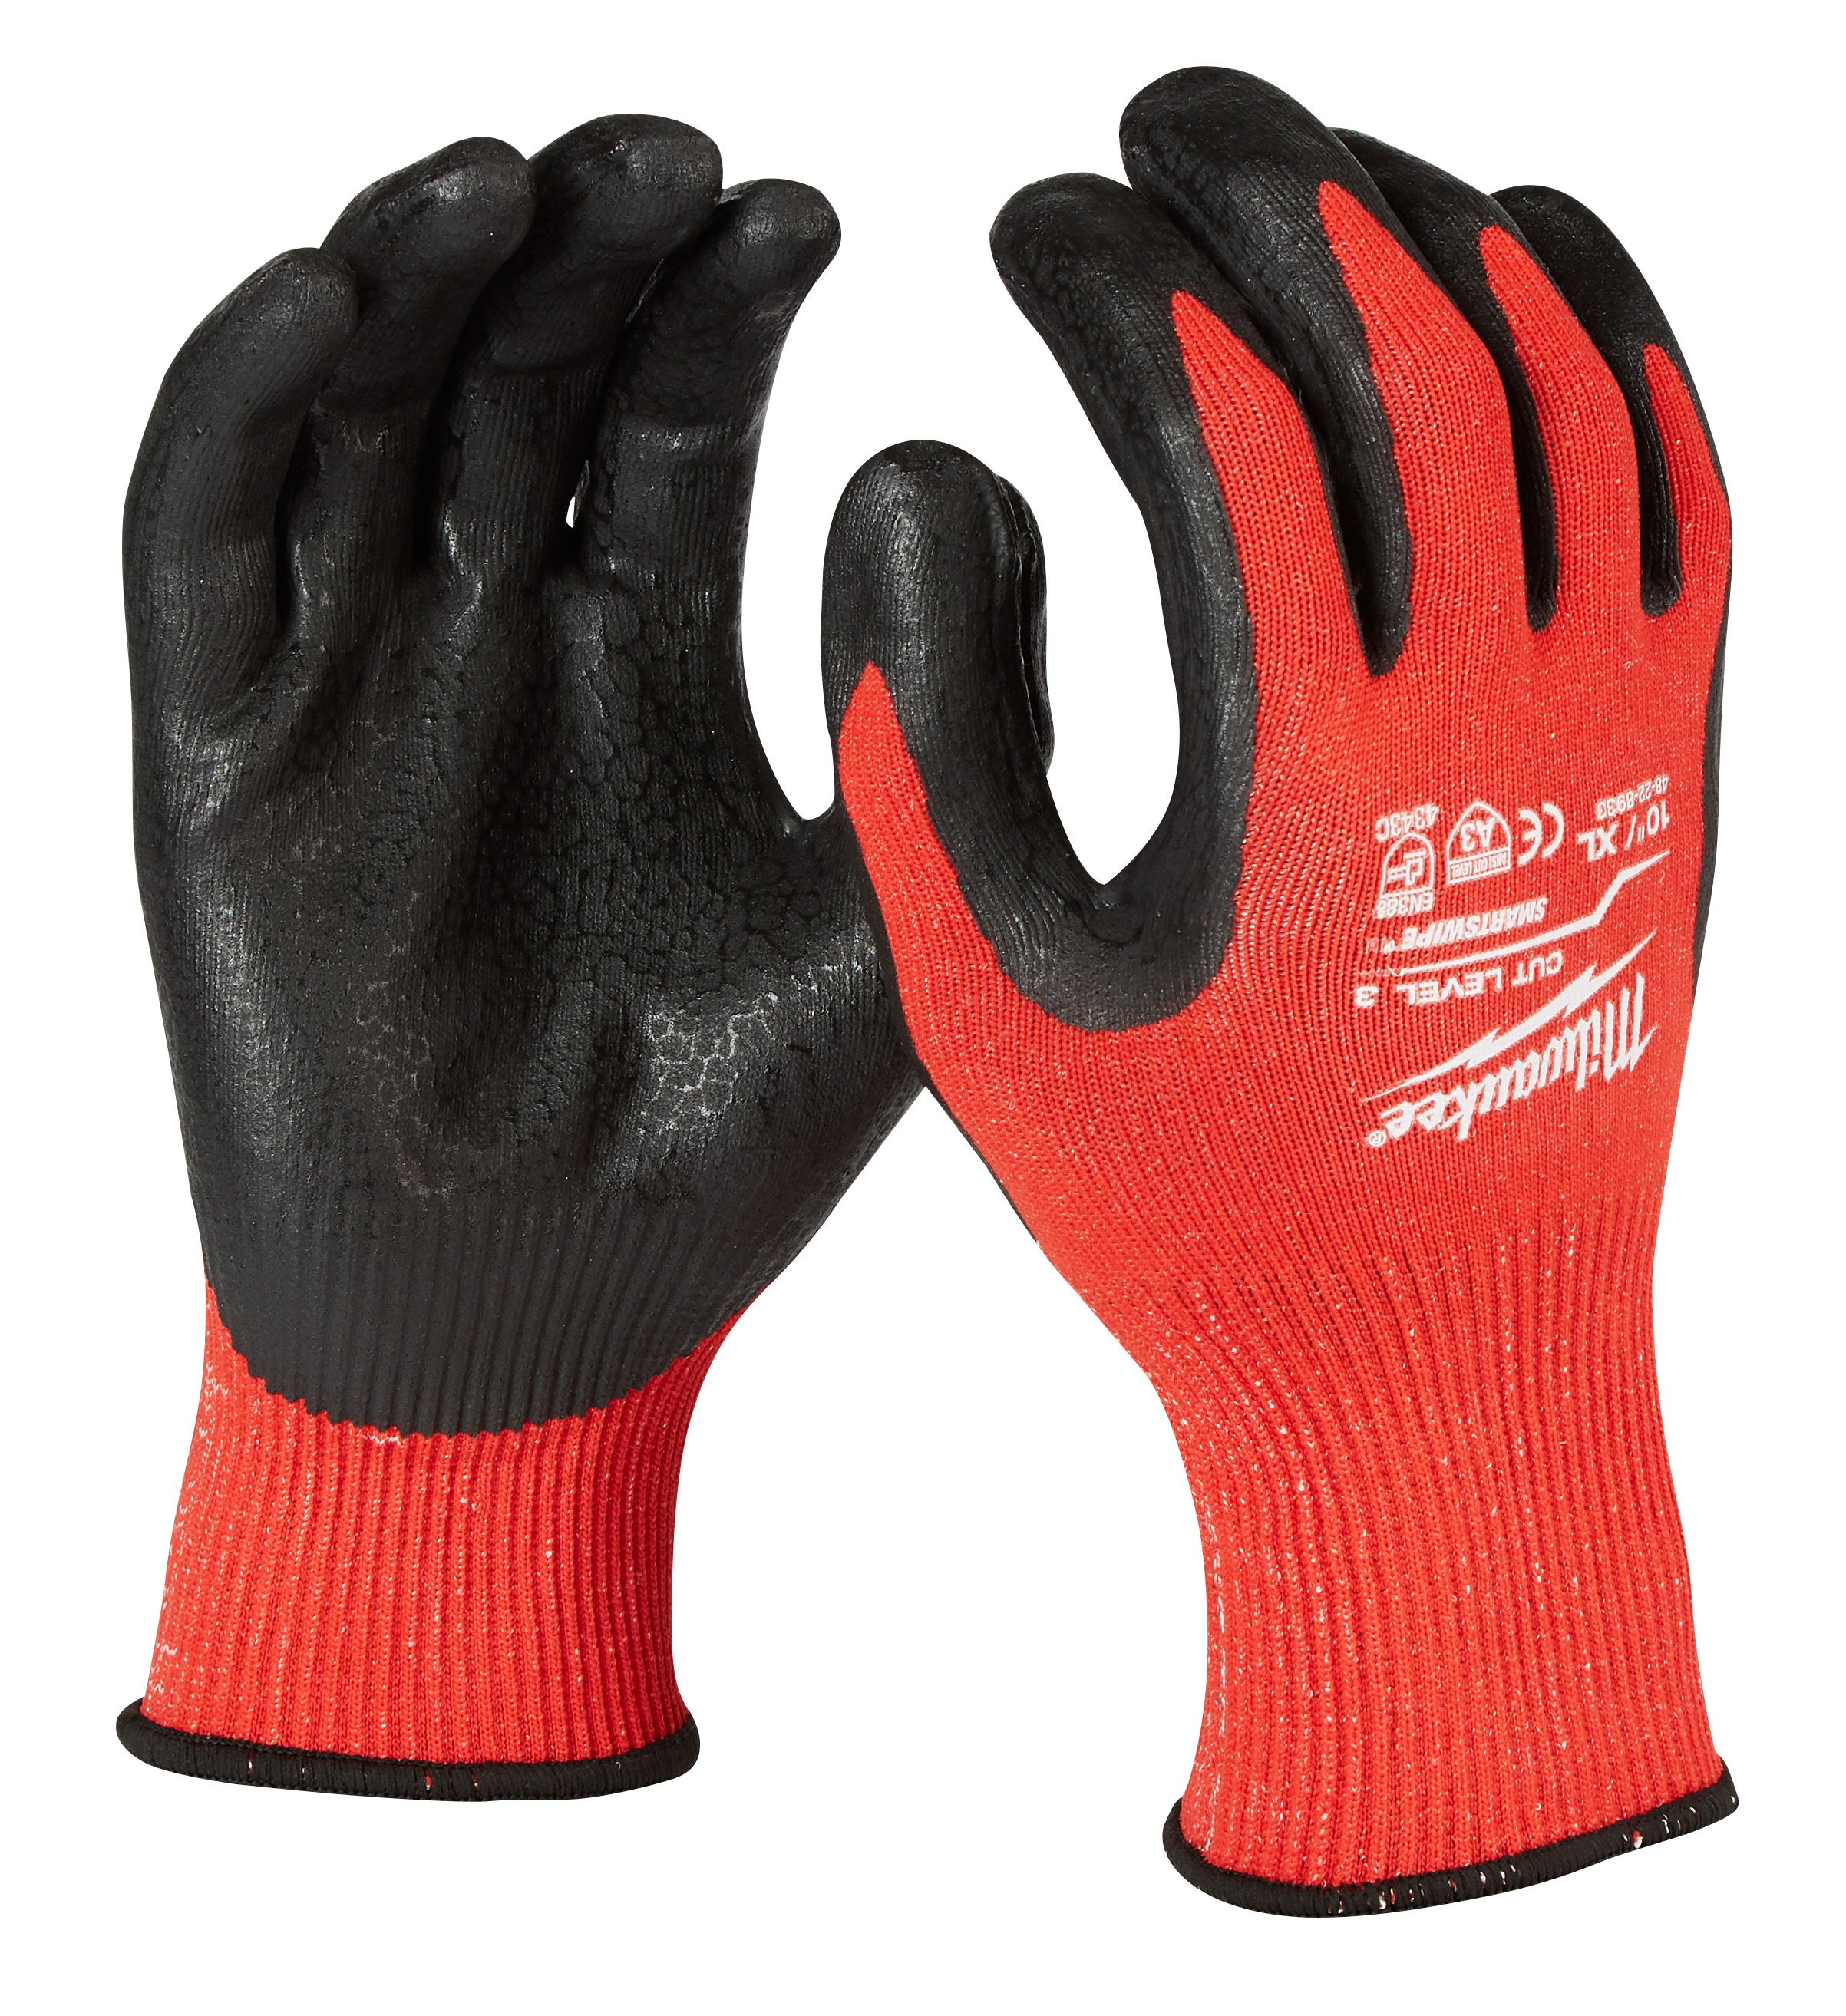 Milwaukee® 48-22-8933 Breathable Unisex Cut-Resistant Gloves, XL, Nylon/Lycra Blend, Knit Cuff, Resists: Cut and Puncture, ANSI Cut-Resistance Level: A3